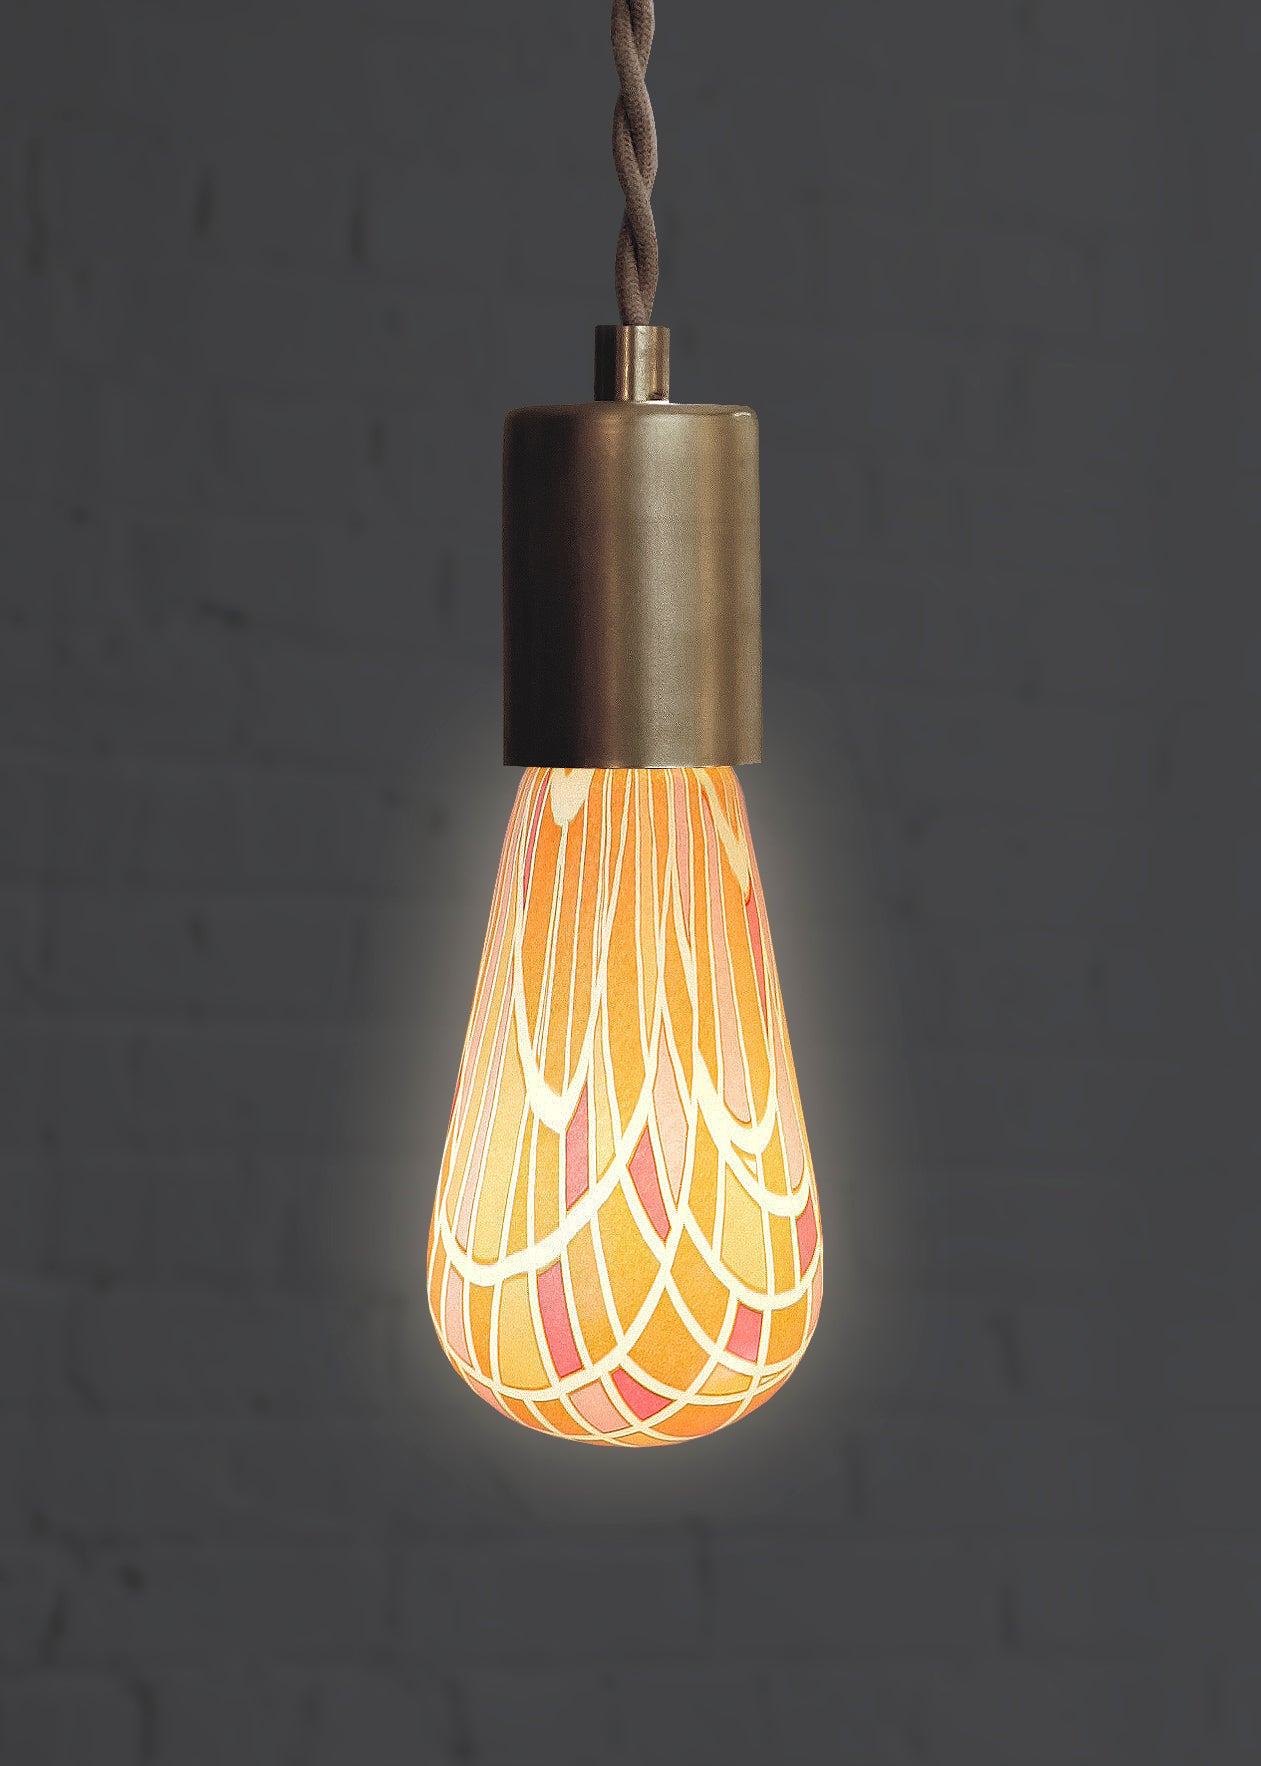 Stained Glass Artisan Light Bulb By Relamp Made In The Usa Relamp